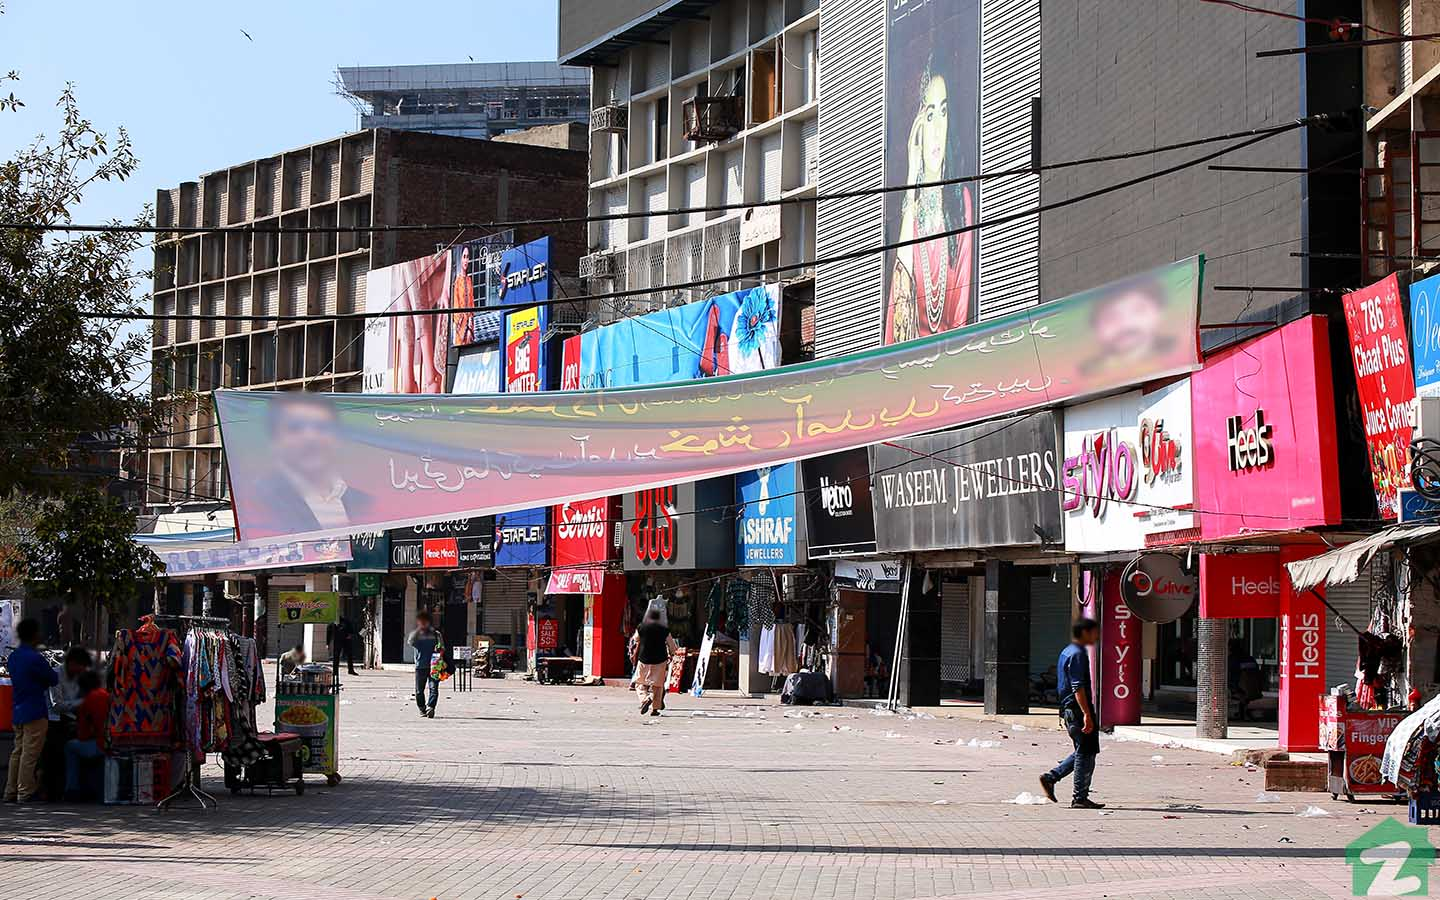 Liberty Market Lahore is located near Jail Road